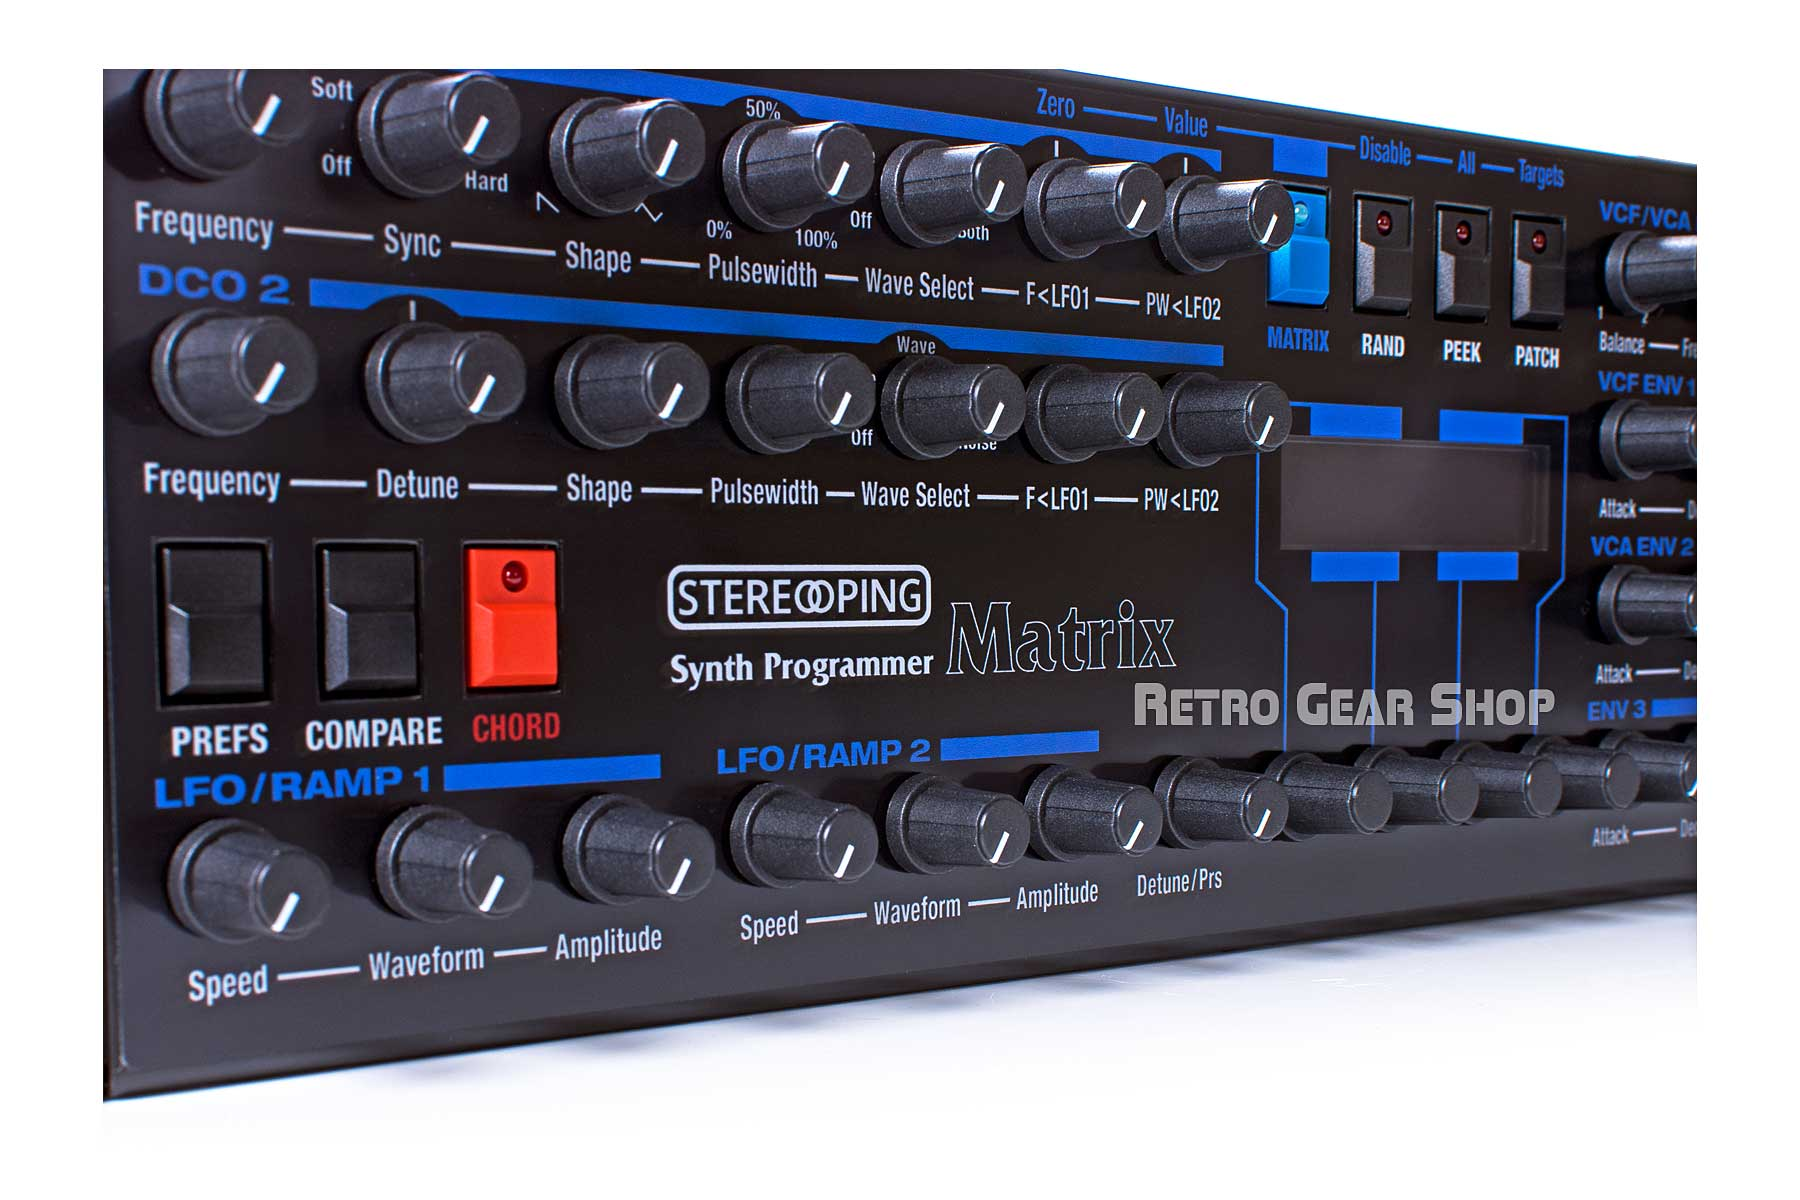 Stereoping Programmer Oberheim Matrix Knobs